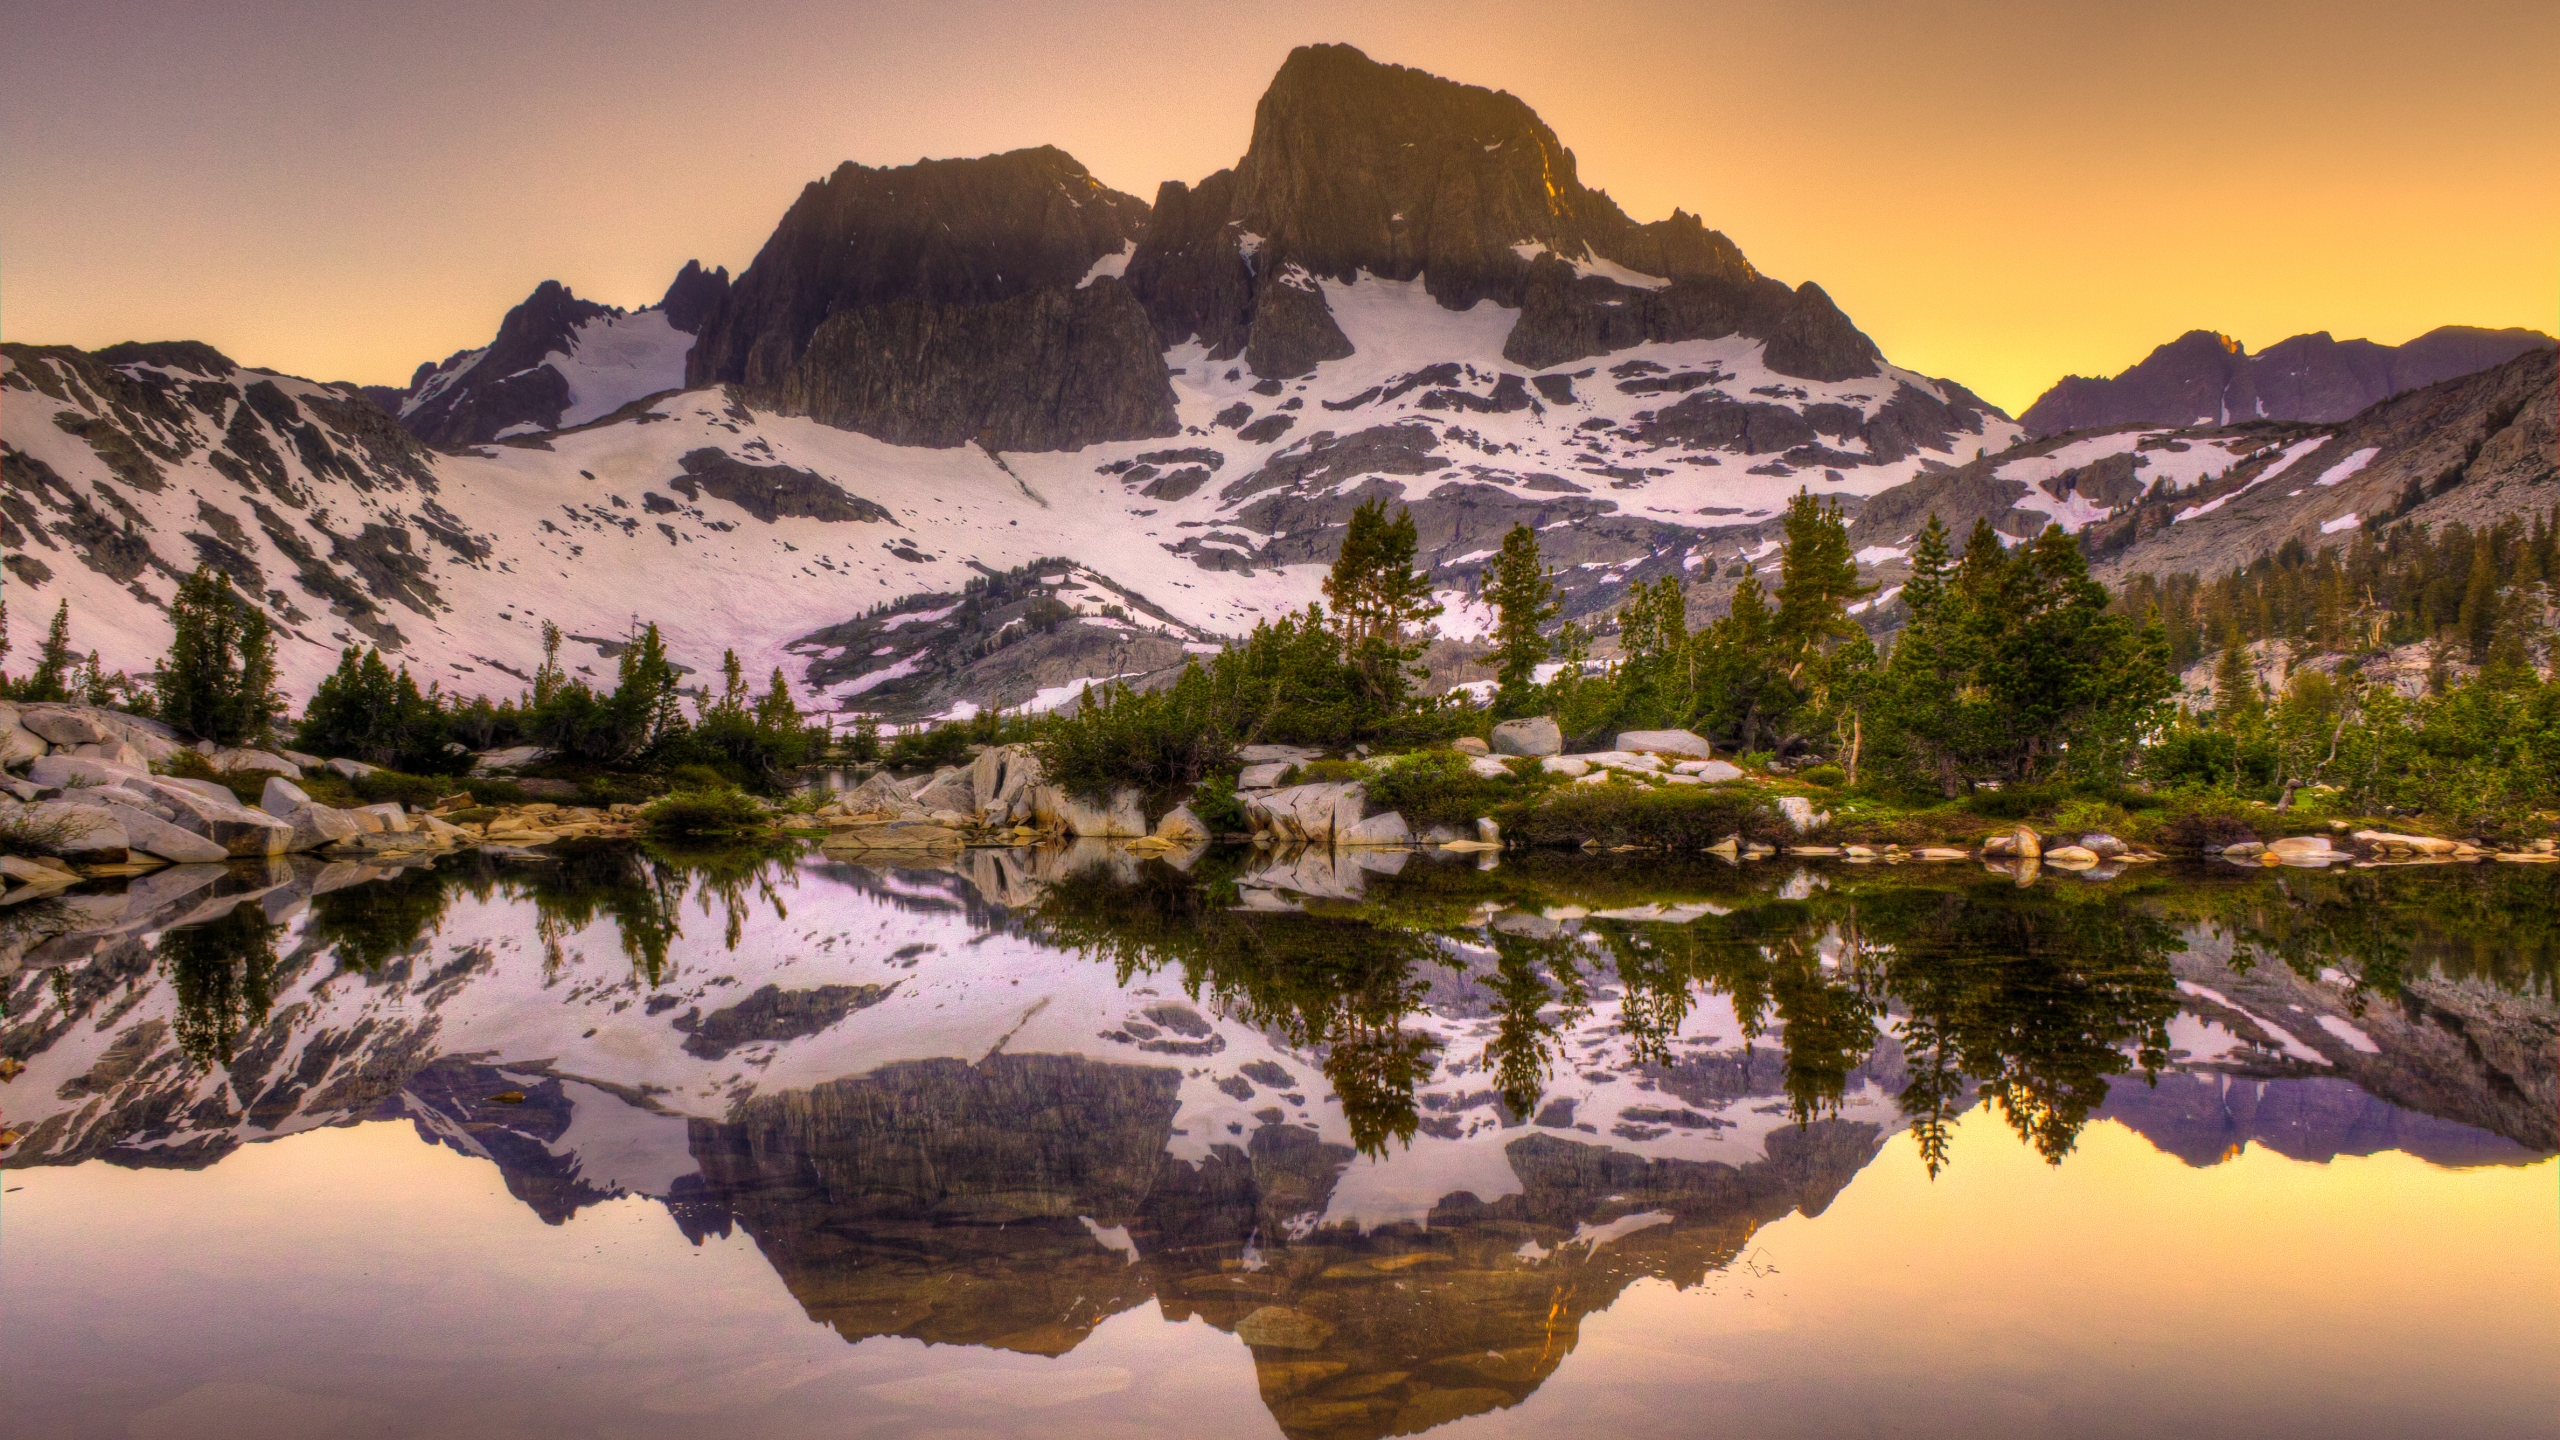 Mount Banner and Mount Ritter are seen reflecting off Garnet Lake, about 2 1/2 miles north of Iceberg Lake, in a stock photo. (Credit: RMB Images / Photography by Robert Bowman via Getty Images)